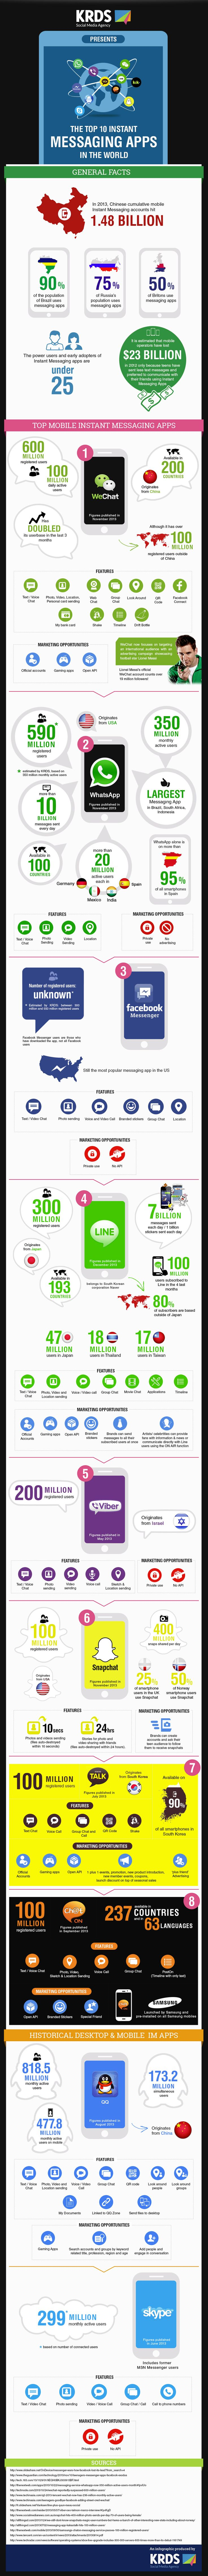 Top 10 Instant Messaging Apps #Infographic